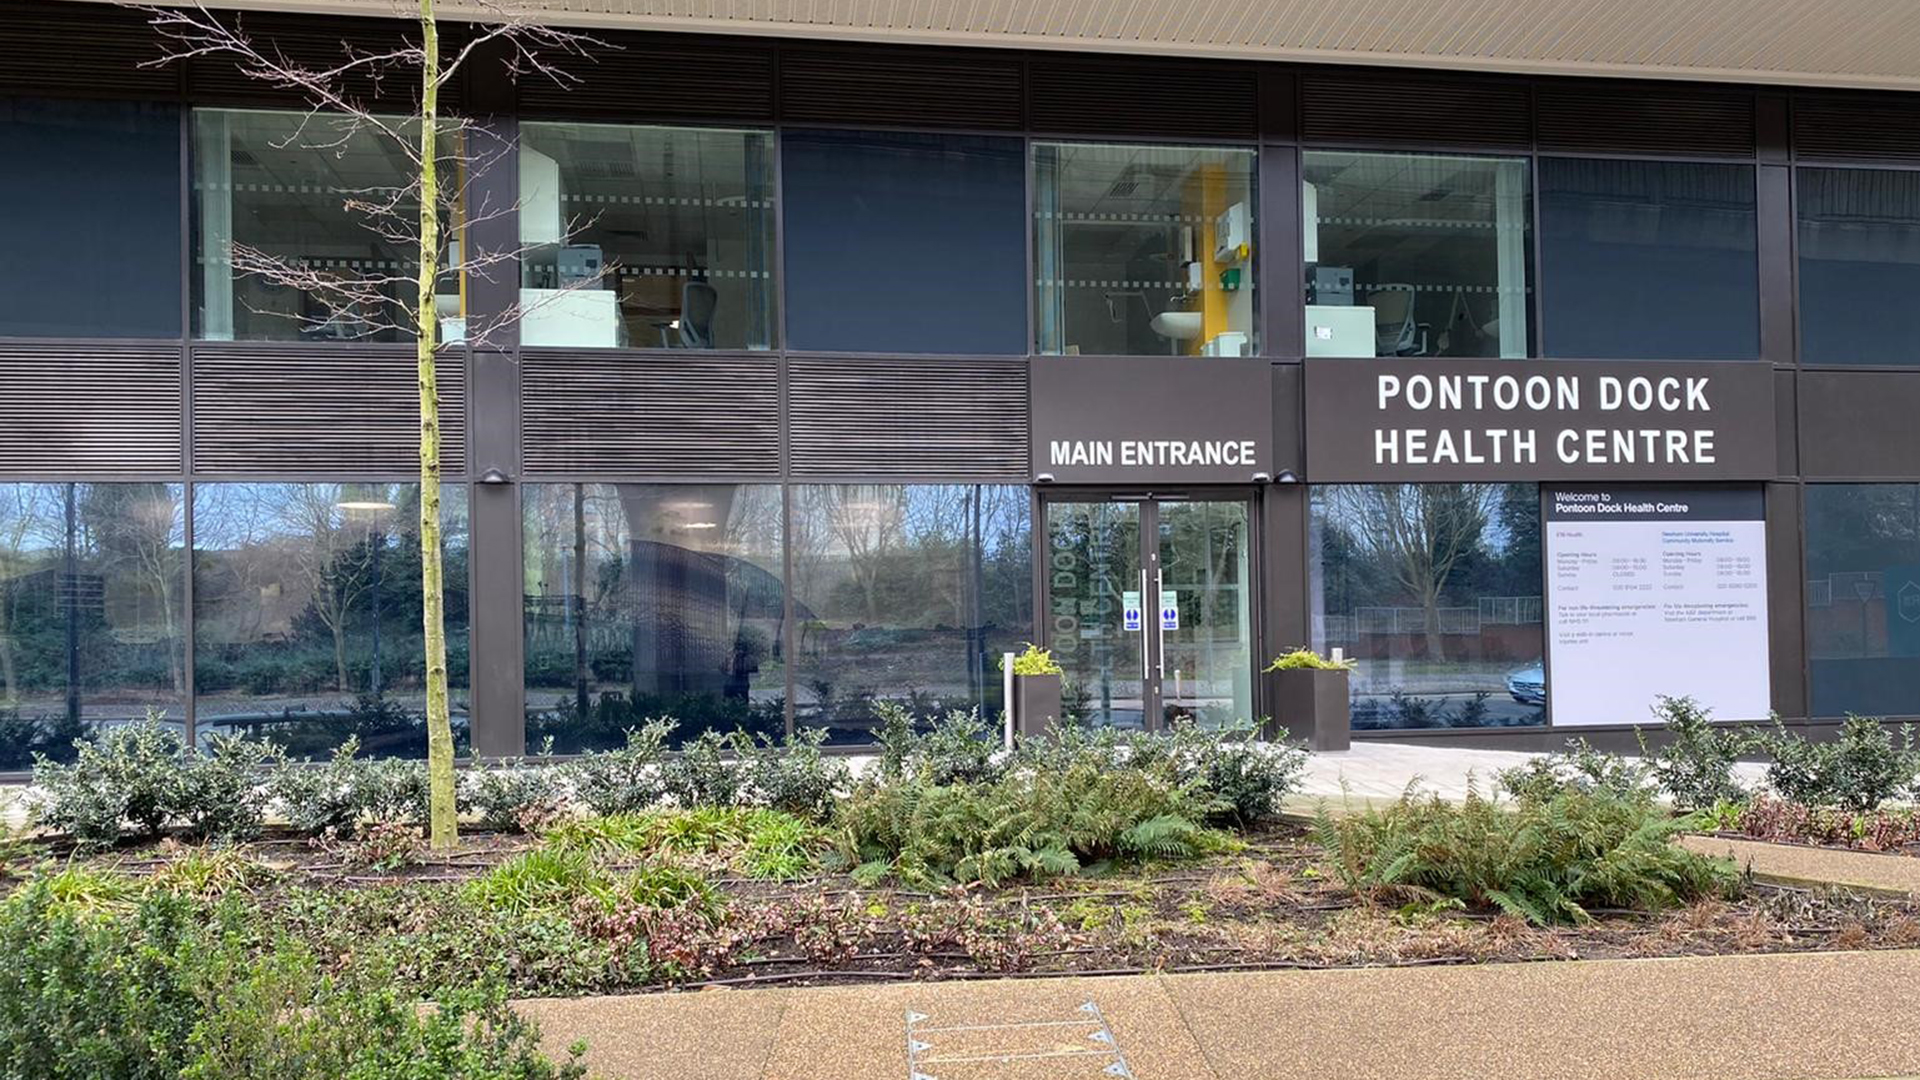 An image showing the main entrance of Pontoon Dock Health Centre